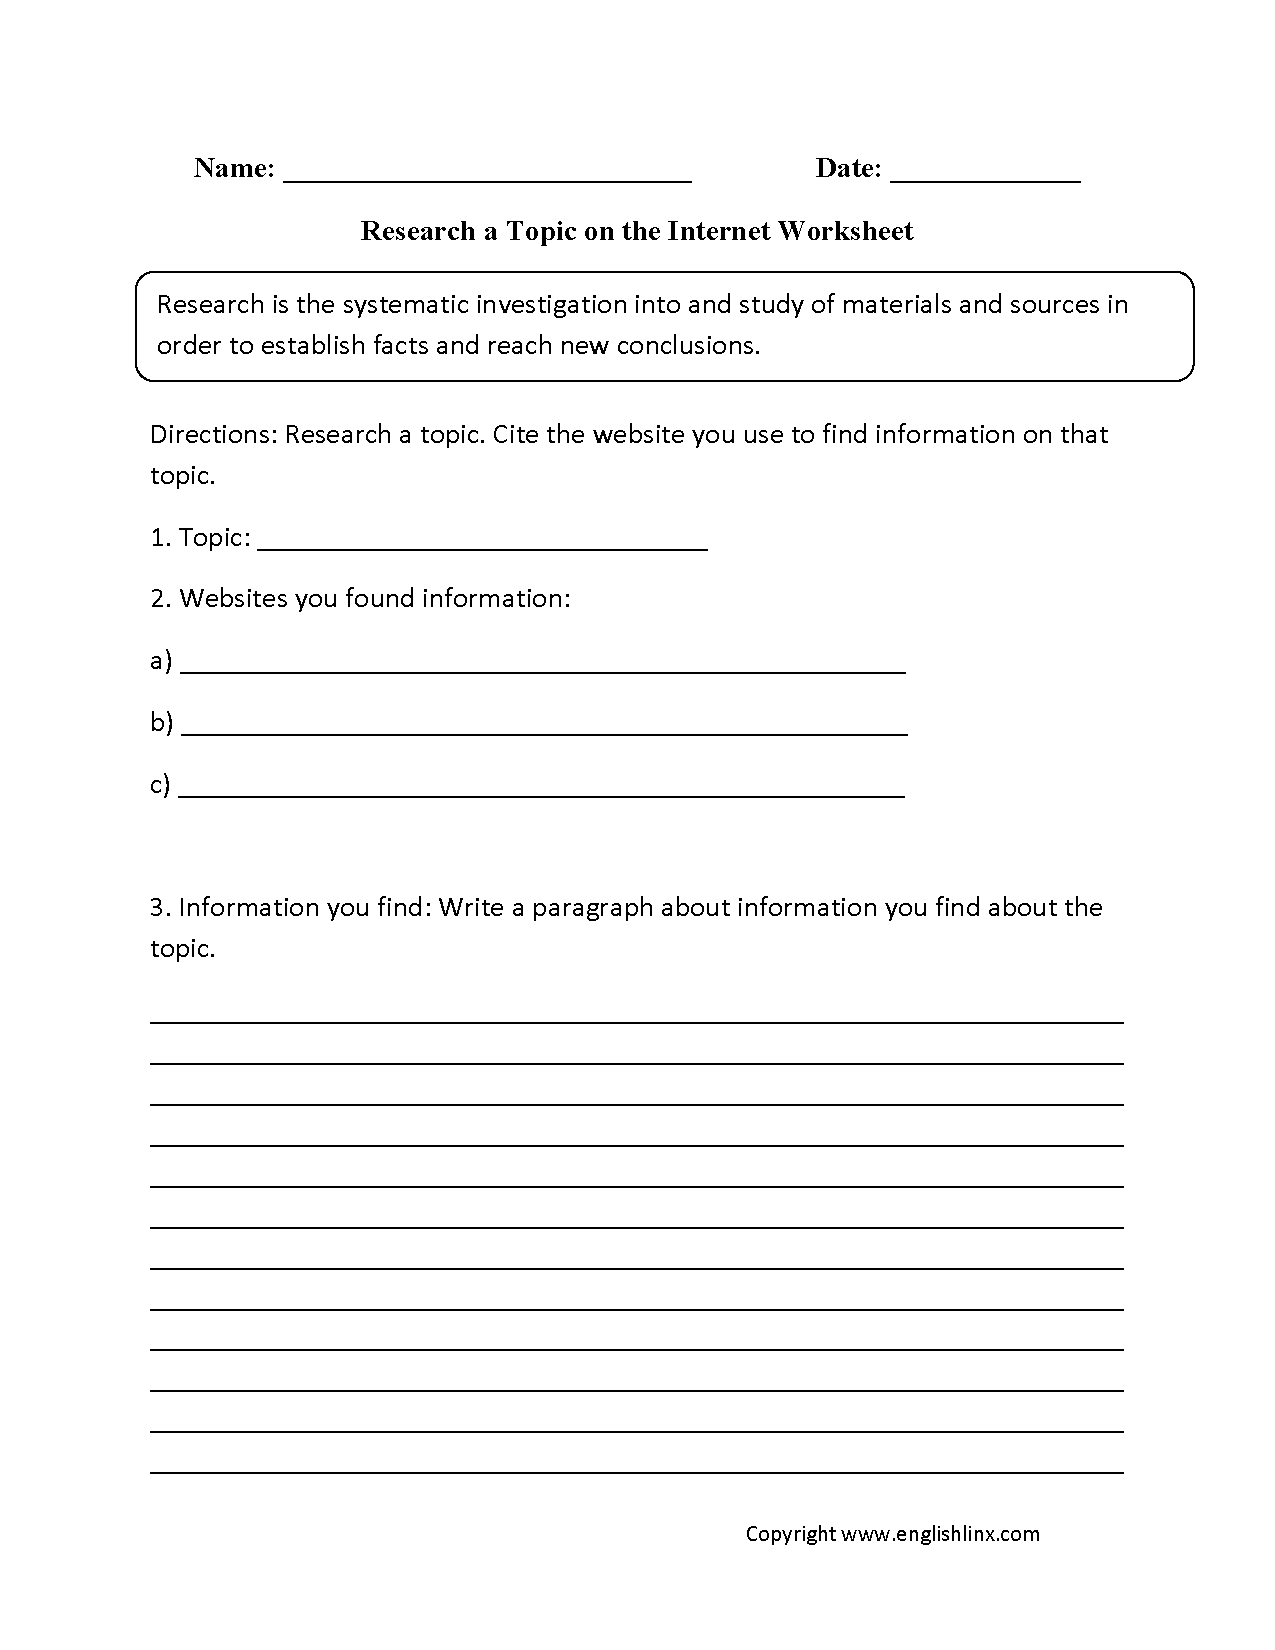 Aldiablosus  Gorgeous Englishlinxcom  Research Worksheets With Great On The Internet Worksheet With Captivating Distributive Law Worksheets Also Download Worksheet In Addition Free Printable Science Worksheets For Th Grade And Double Bar Graph Worksheets Grade  As Well As A And An Worksheets For Grade  Additionally Grammar Worksheets Ks From Englishlinxcom With Aldiablosus  Great Englishlinxcom  Research Worksheets With Captivating On The Internet Worksheet And Gorgeous Distributive Law Worksheets Also Download Worksheet In Addition Free Printable Science Worksheets For Th Grade From Englishlinxcom